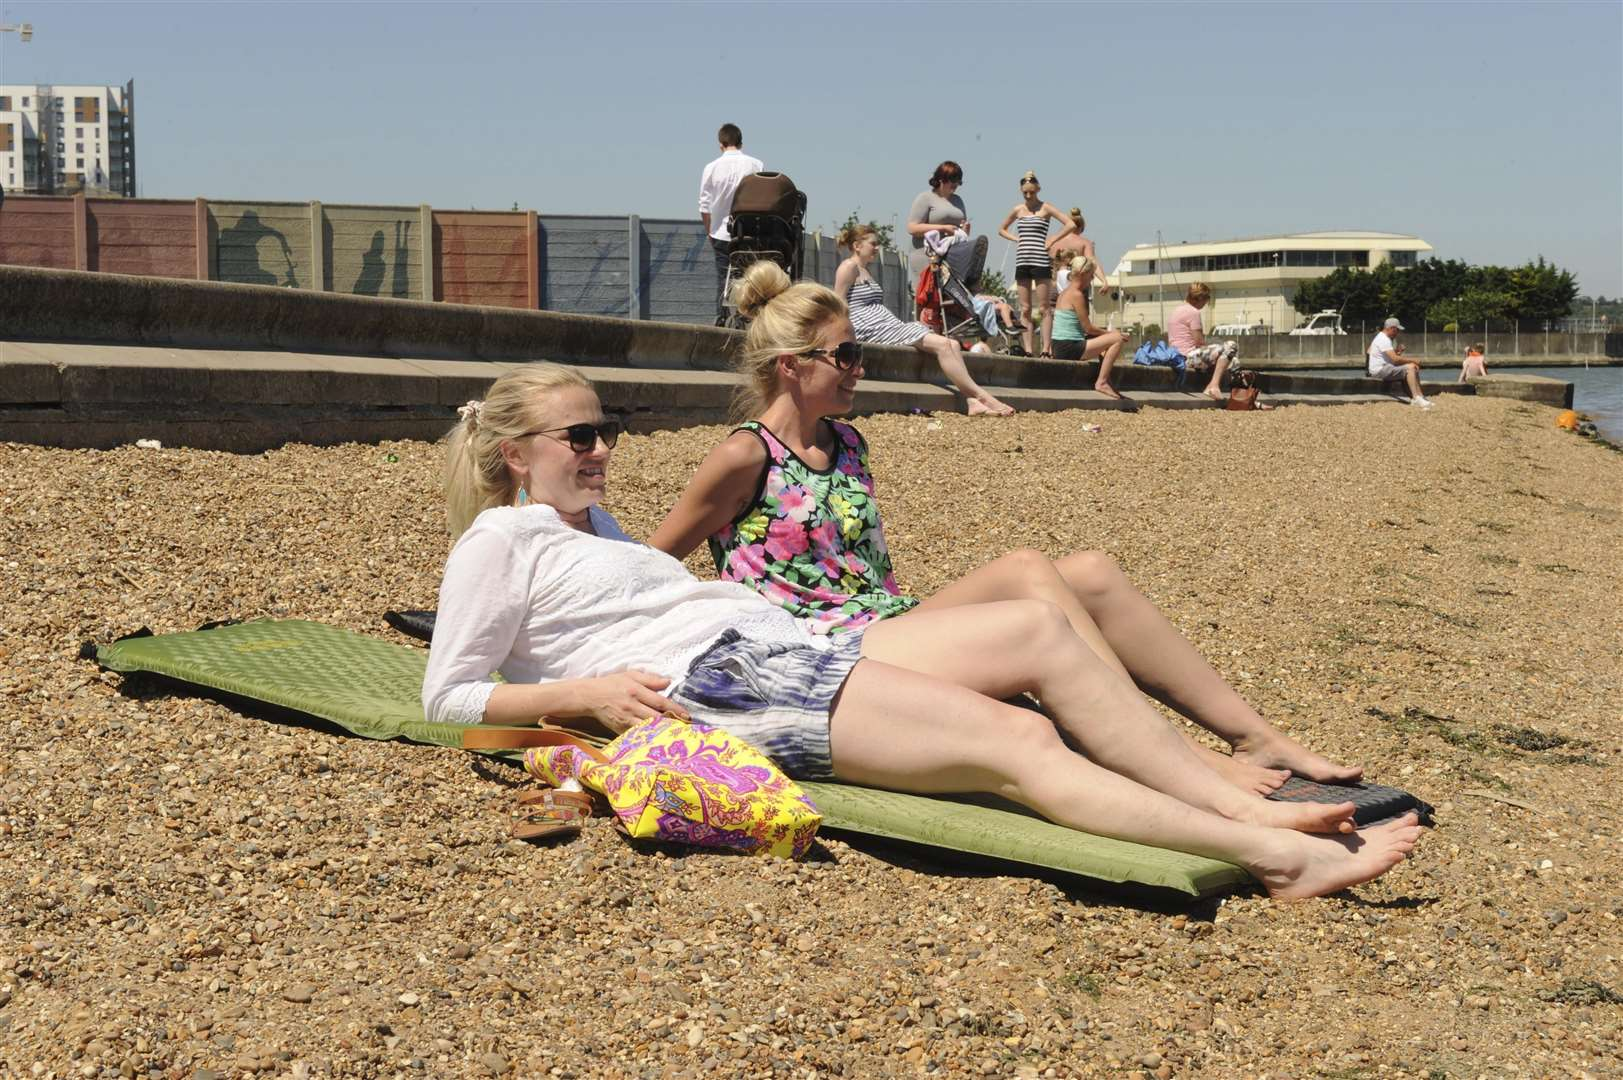 The Strand, Gillingham.People enjoying the hot weather.Picture: Steve Crispe FM4433553 (2911109)